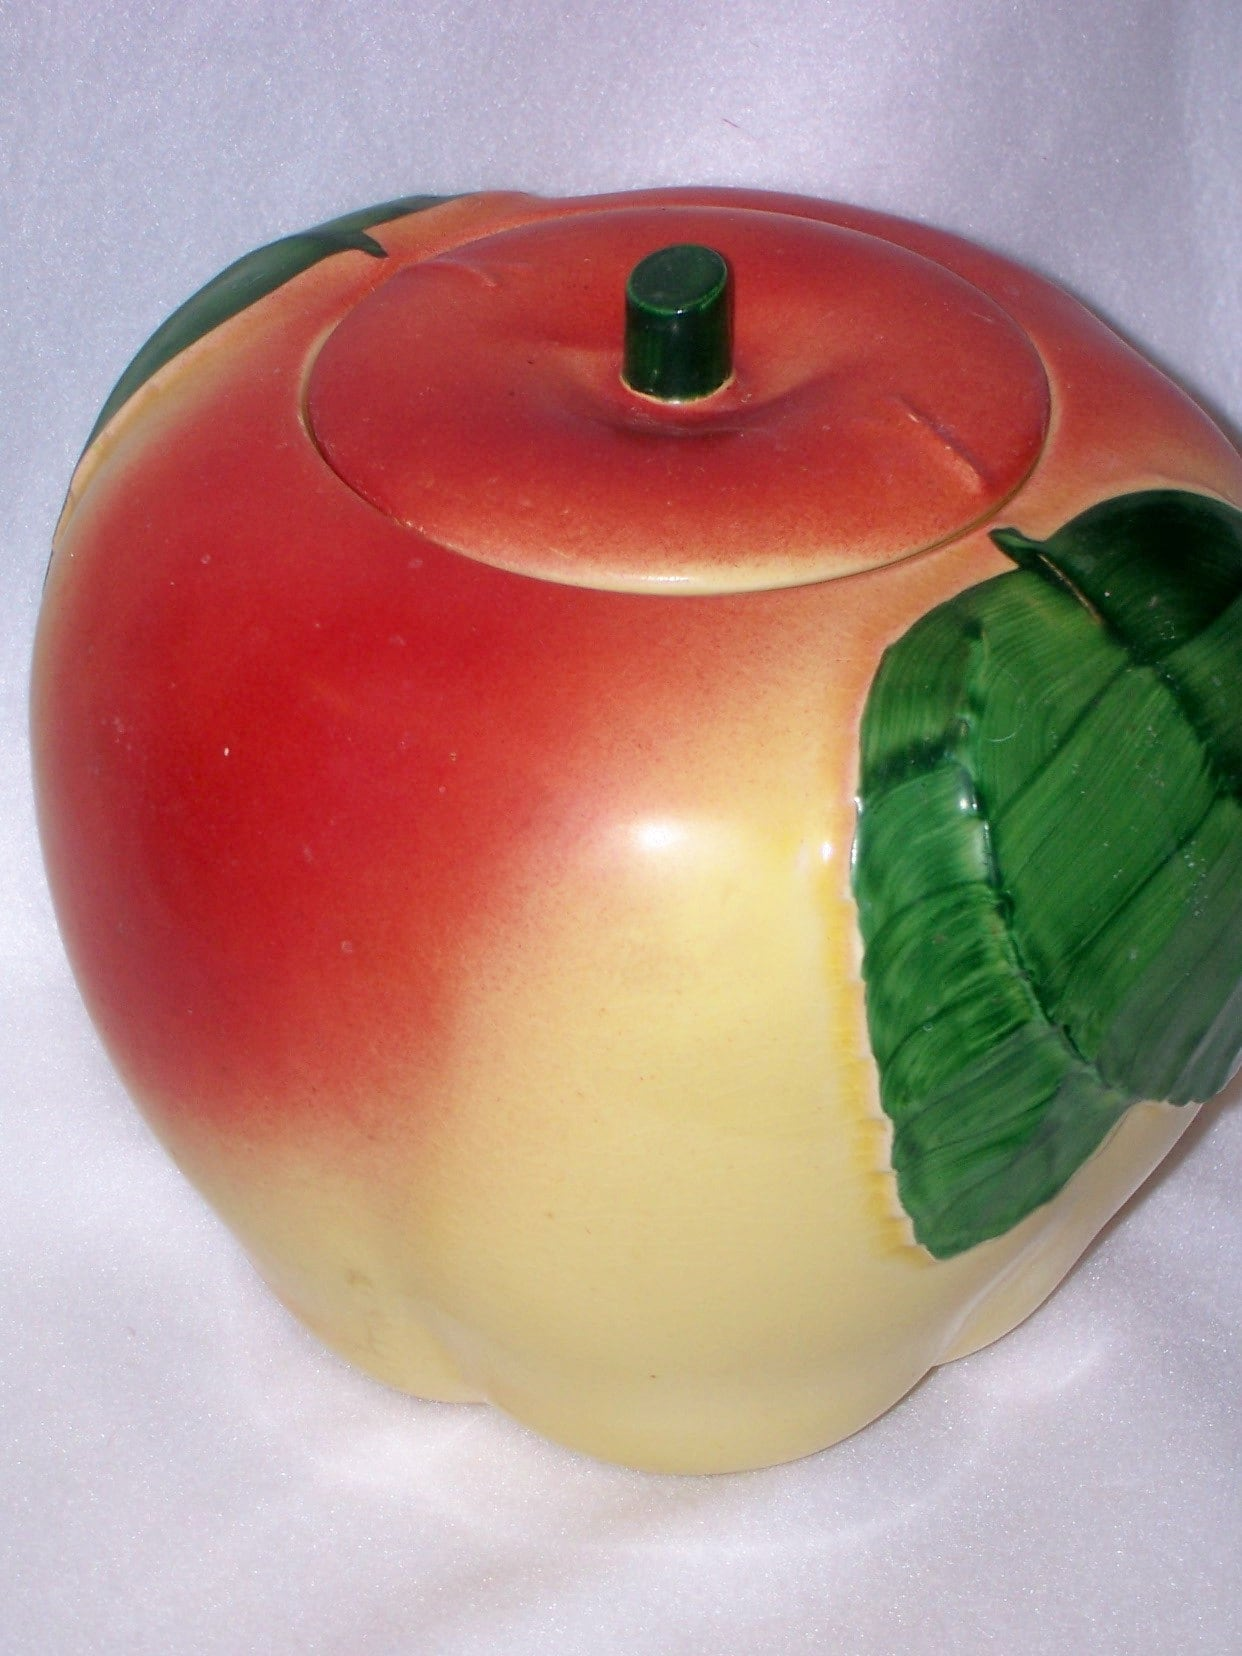 Vintage 1950s hull apple cookie jar container by yoyocottage